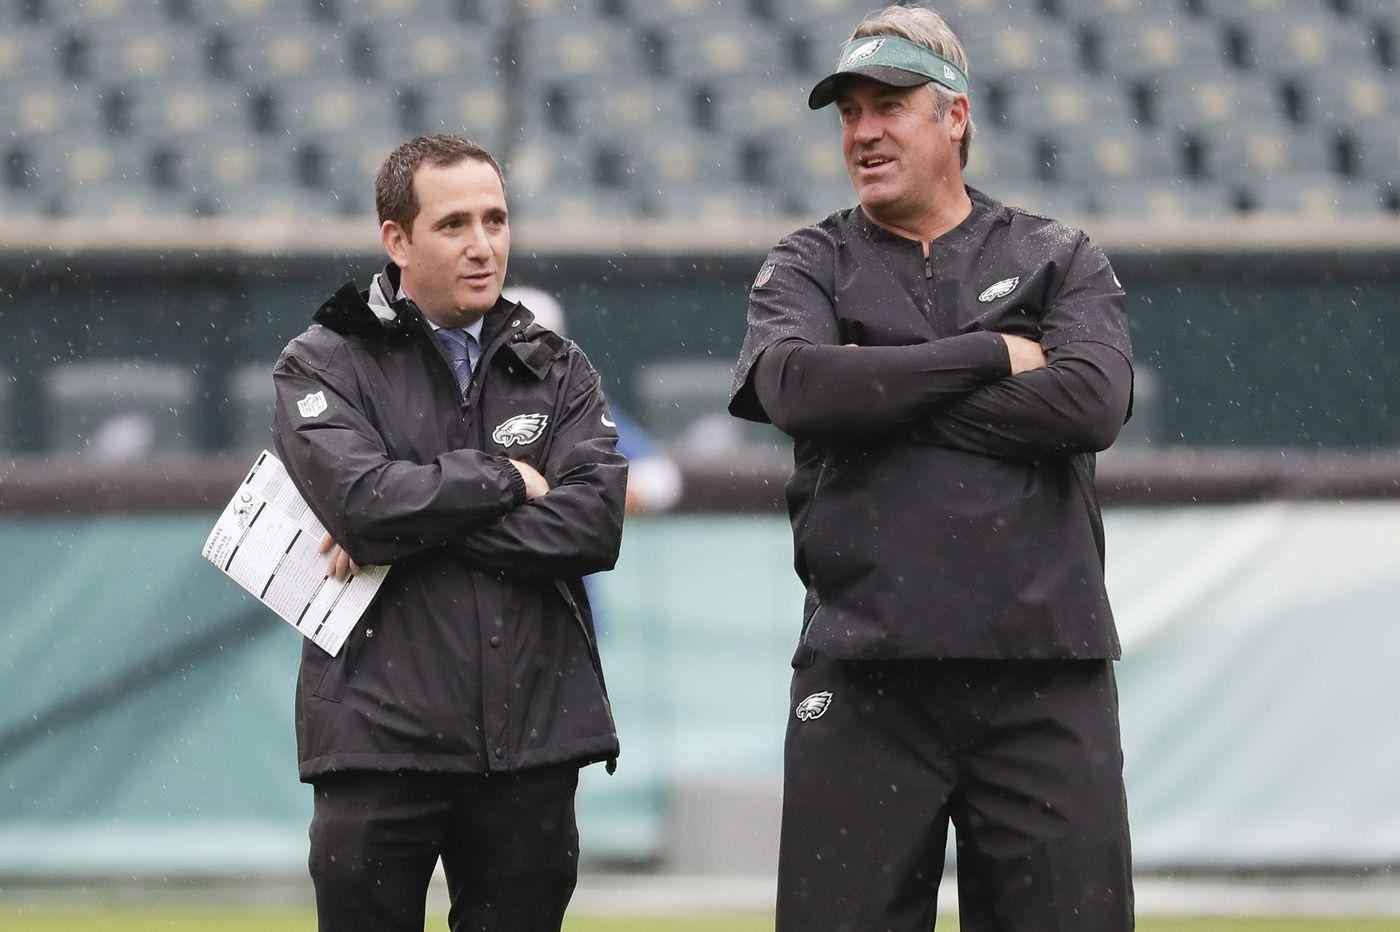 Running back is a problem, but Eagles don't need to pay a premium to address it | David Murphy